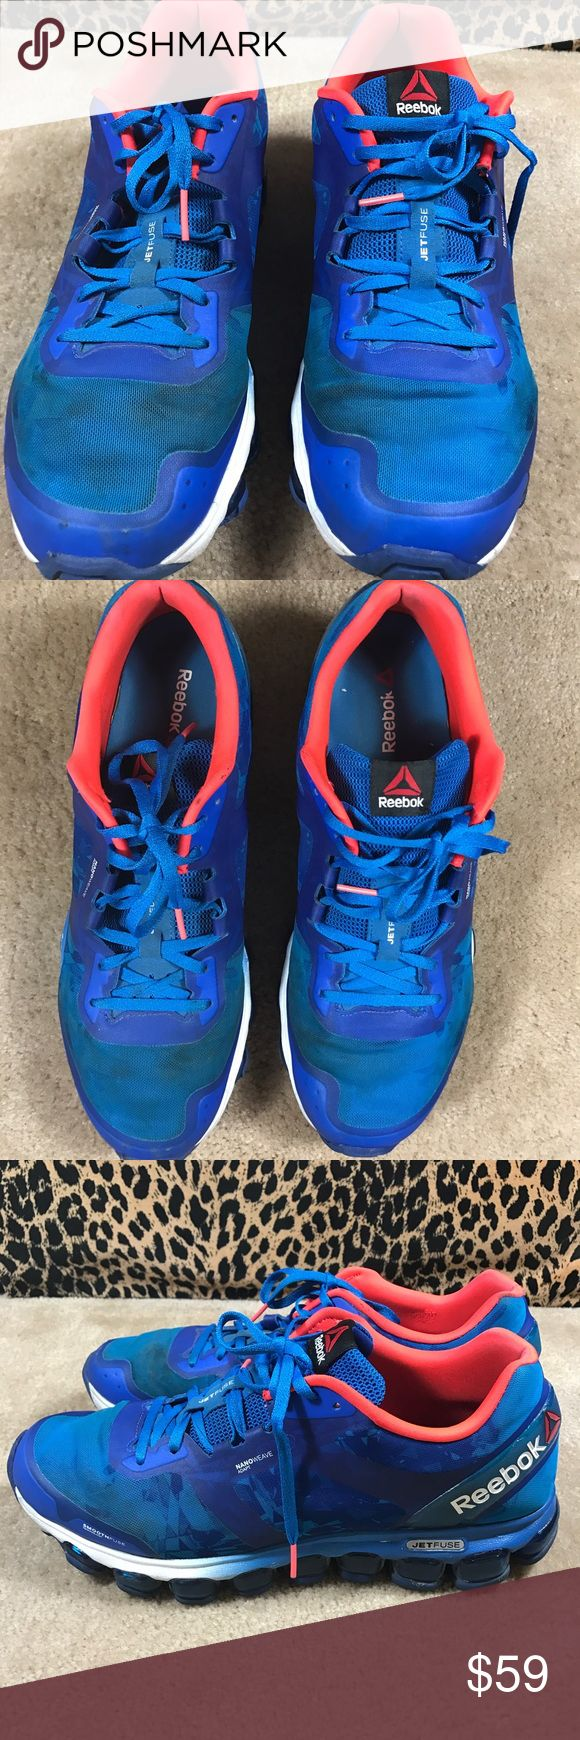 Reebok Men JetFuse Z Jet Soul Running Size 12 GUC You are looking at Reebok Men JetFuse Z Jet Soul Running Shoes Sneakers (Blue / Indigo / Cherry).  The size is 12 US. Used condition, please see photos. Reebok Shoes Sneakers